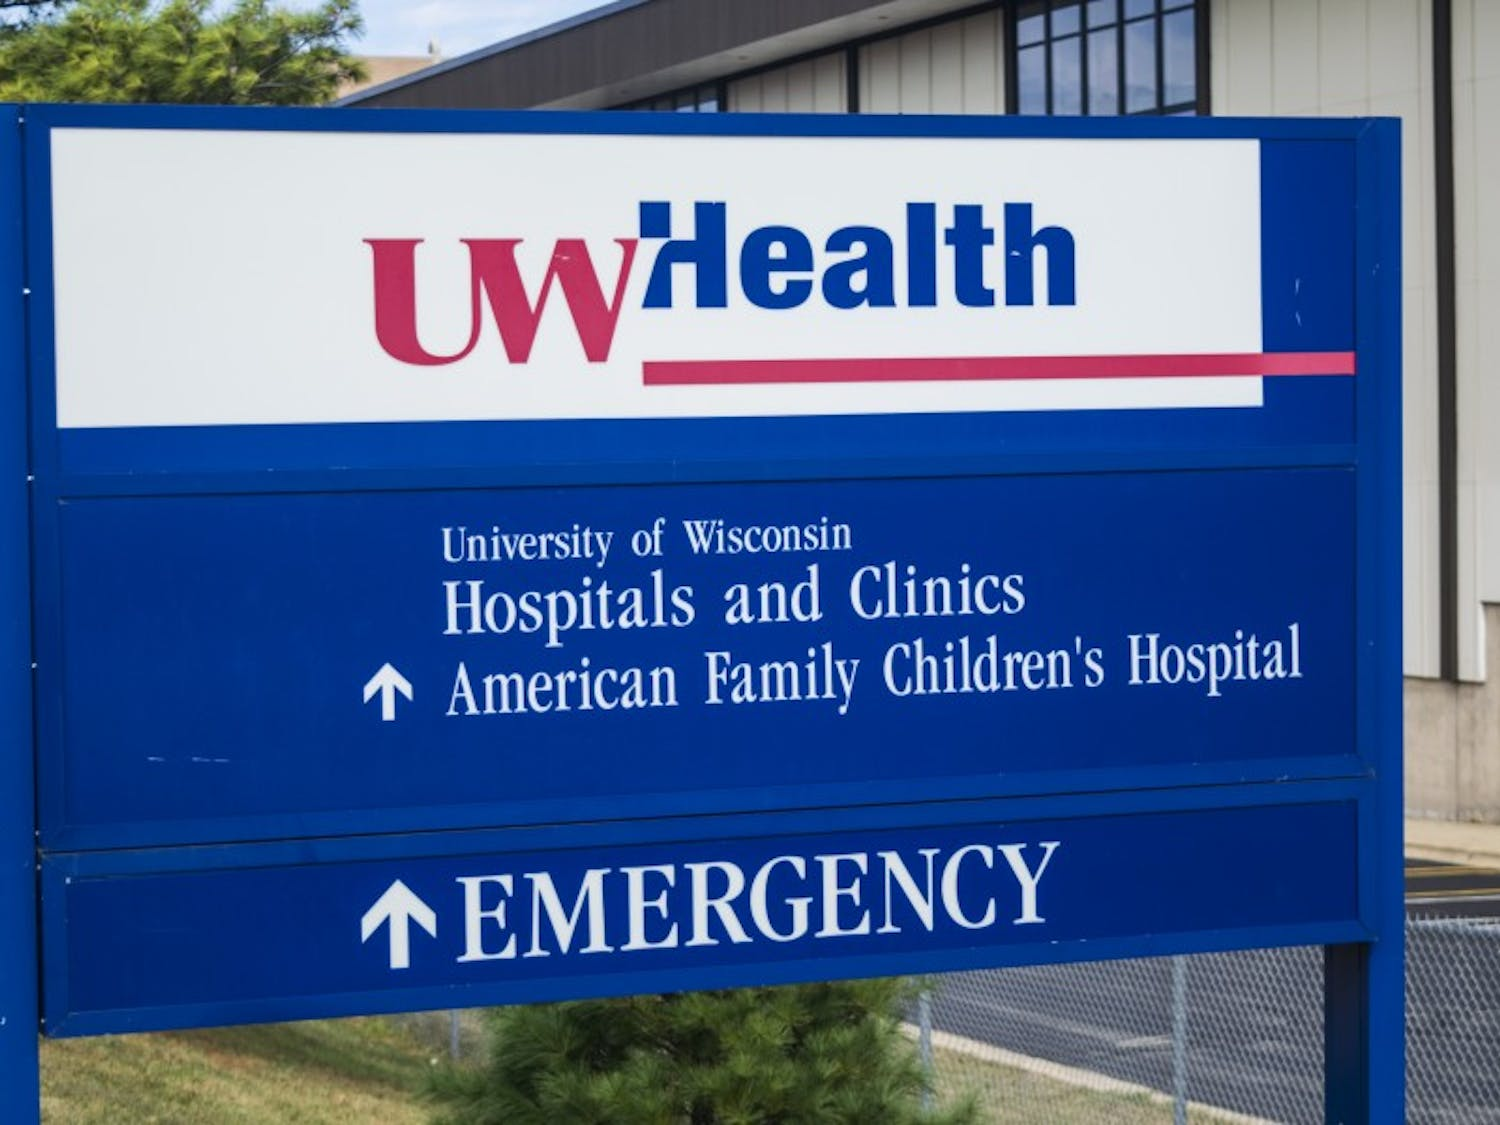 Wisconsin will have to find the funds to cover health insurance costs for 118,000 kids.